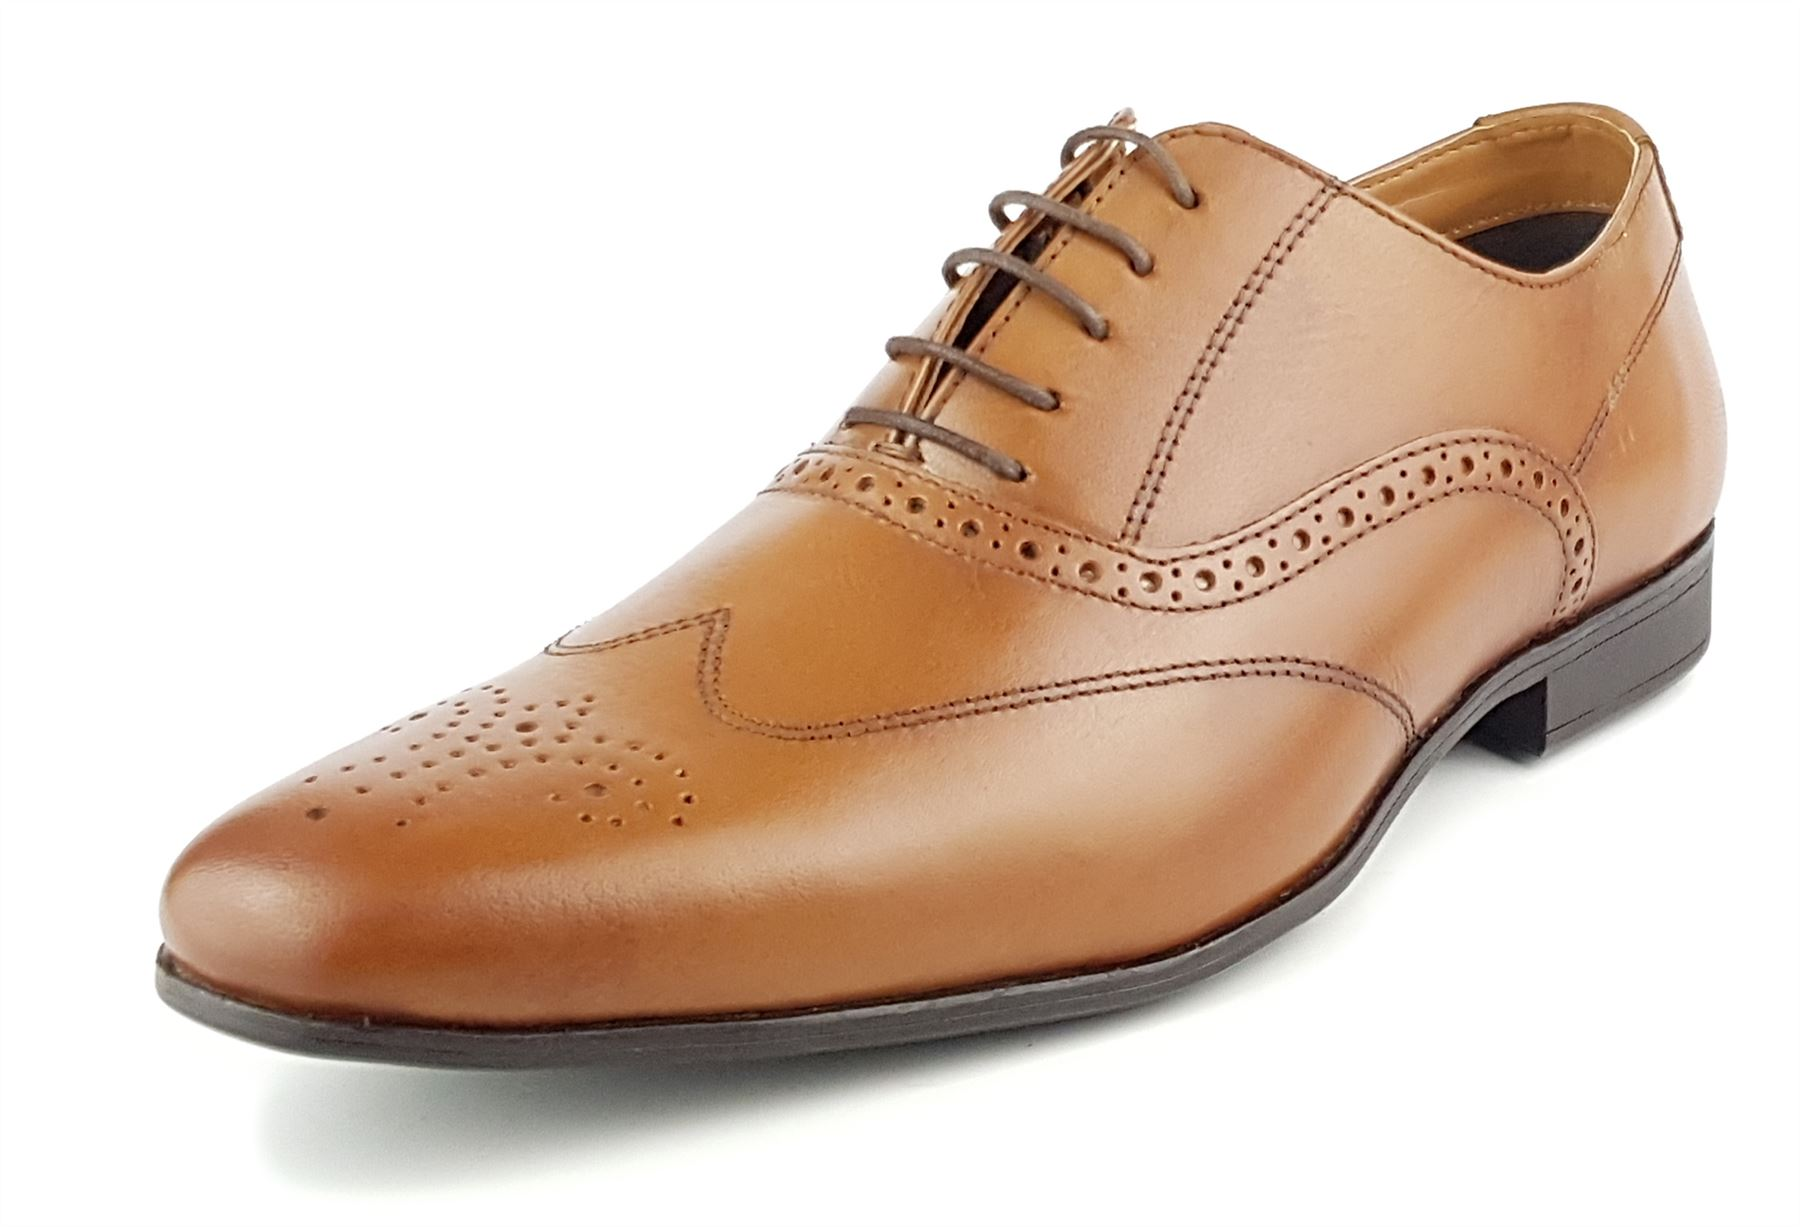 MENS RED TAPE REAL LEATHER LACE UP CASUAL FORMAL SMART WORK BROGUE SHOES SIZE